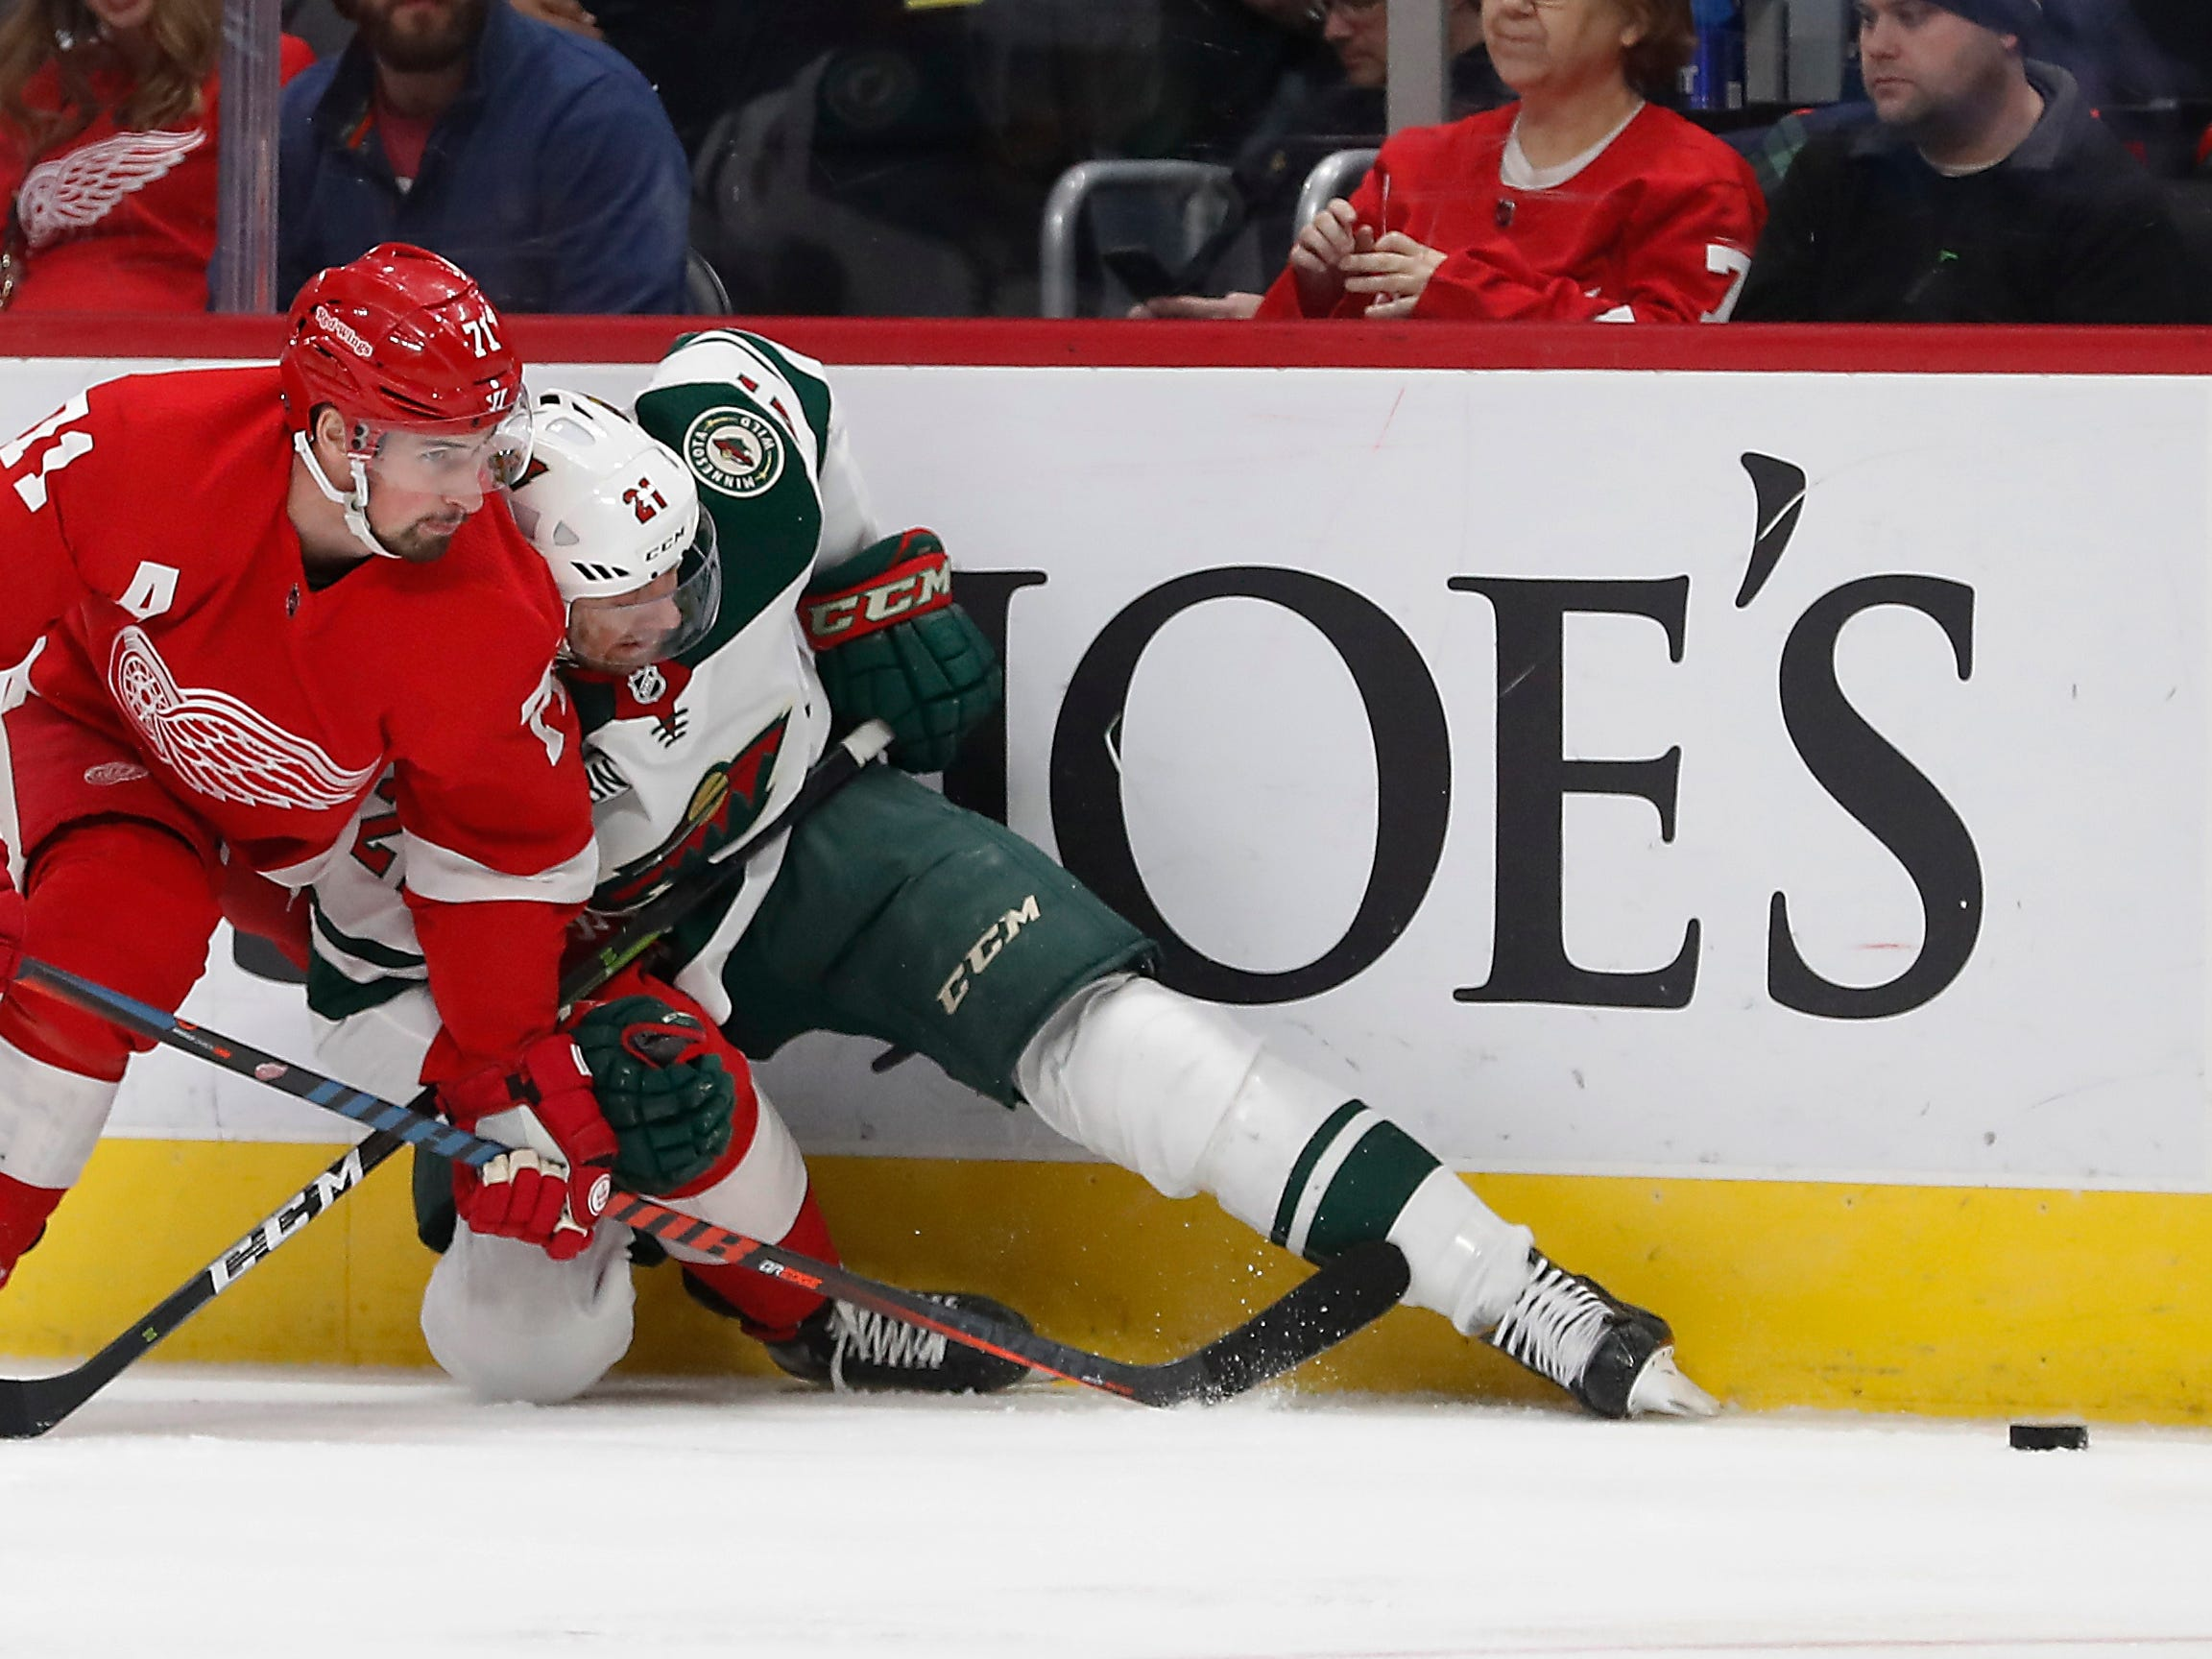 Detroit Red Wings center Dylan Larkin (71) checks Minnesota Wild center Eric Fehr (21) into the boards during the first period of an NHL hockey game Friday, Feb. 22, 2019, in Detroit.